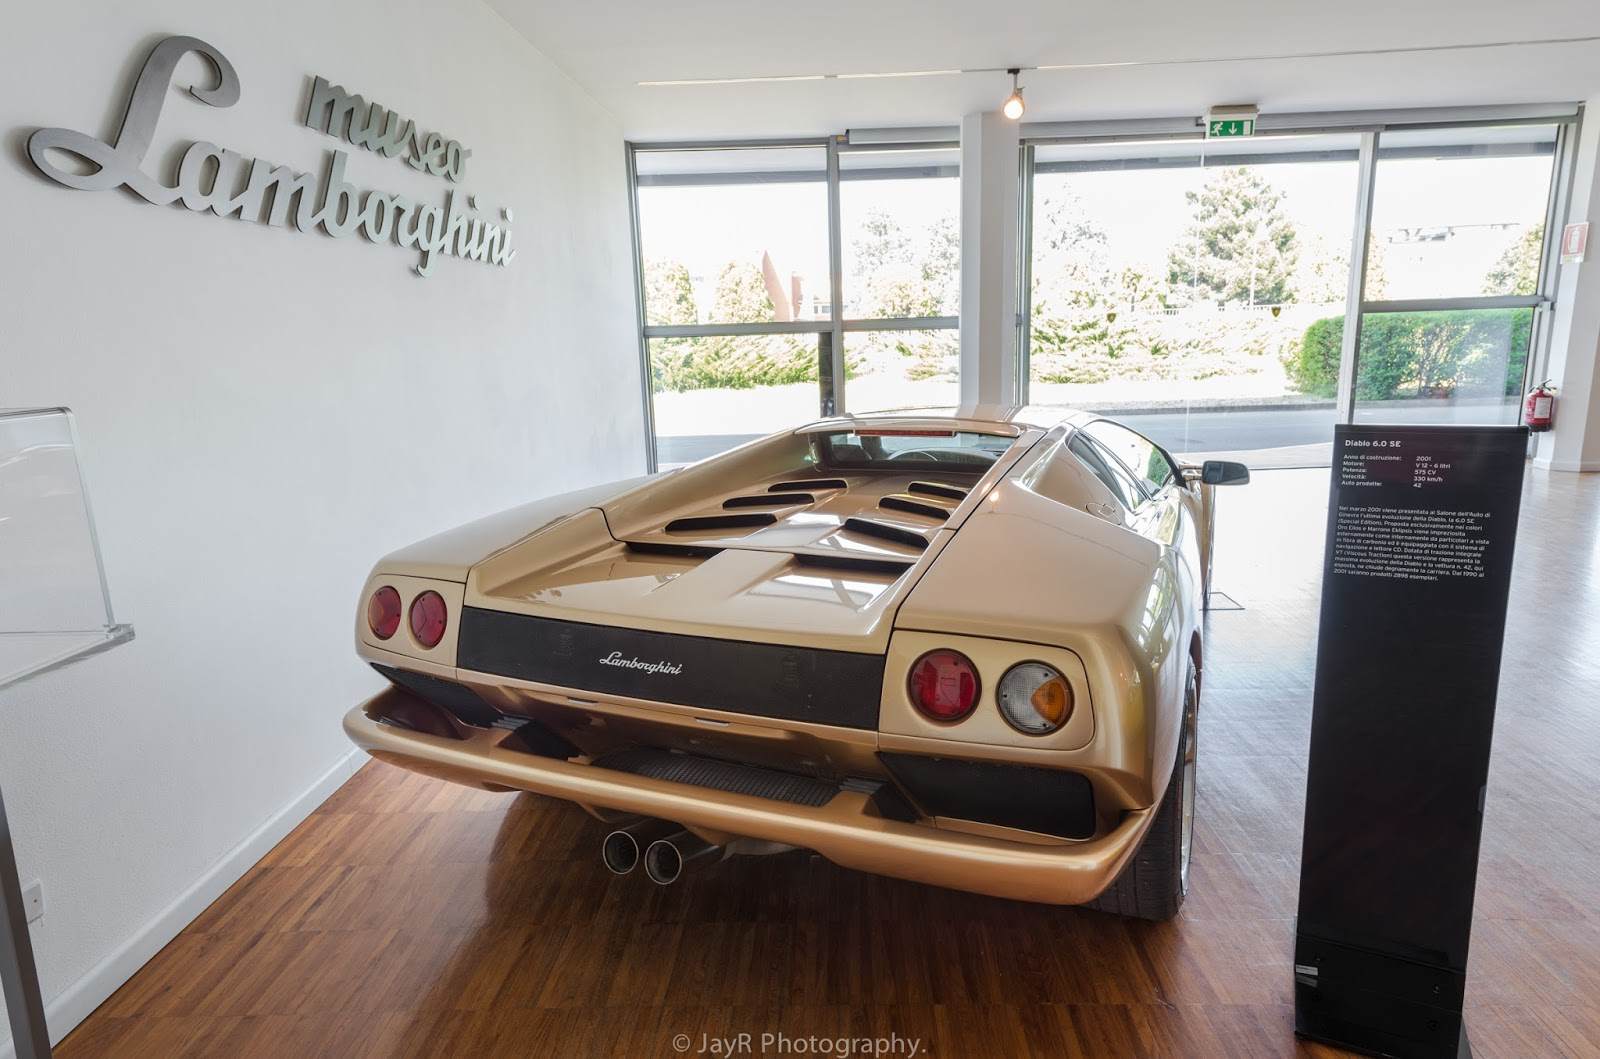 The Diablou0027s My Favourite Lamborghini.